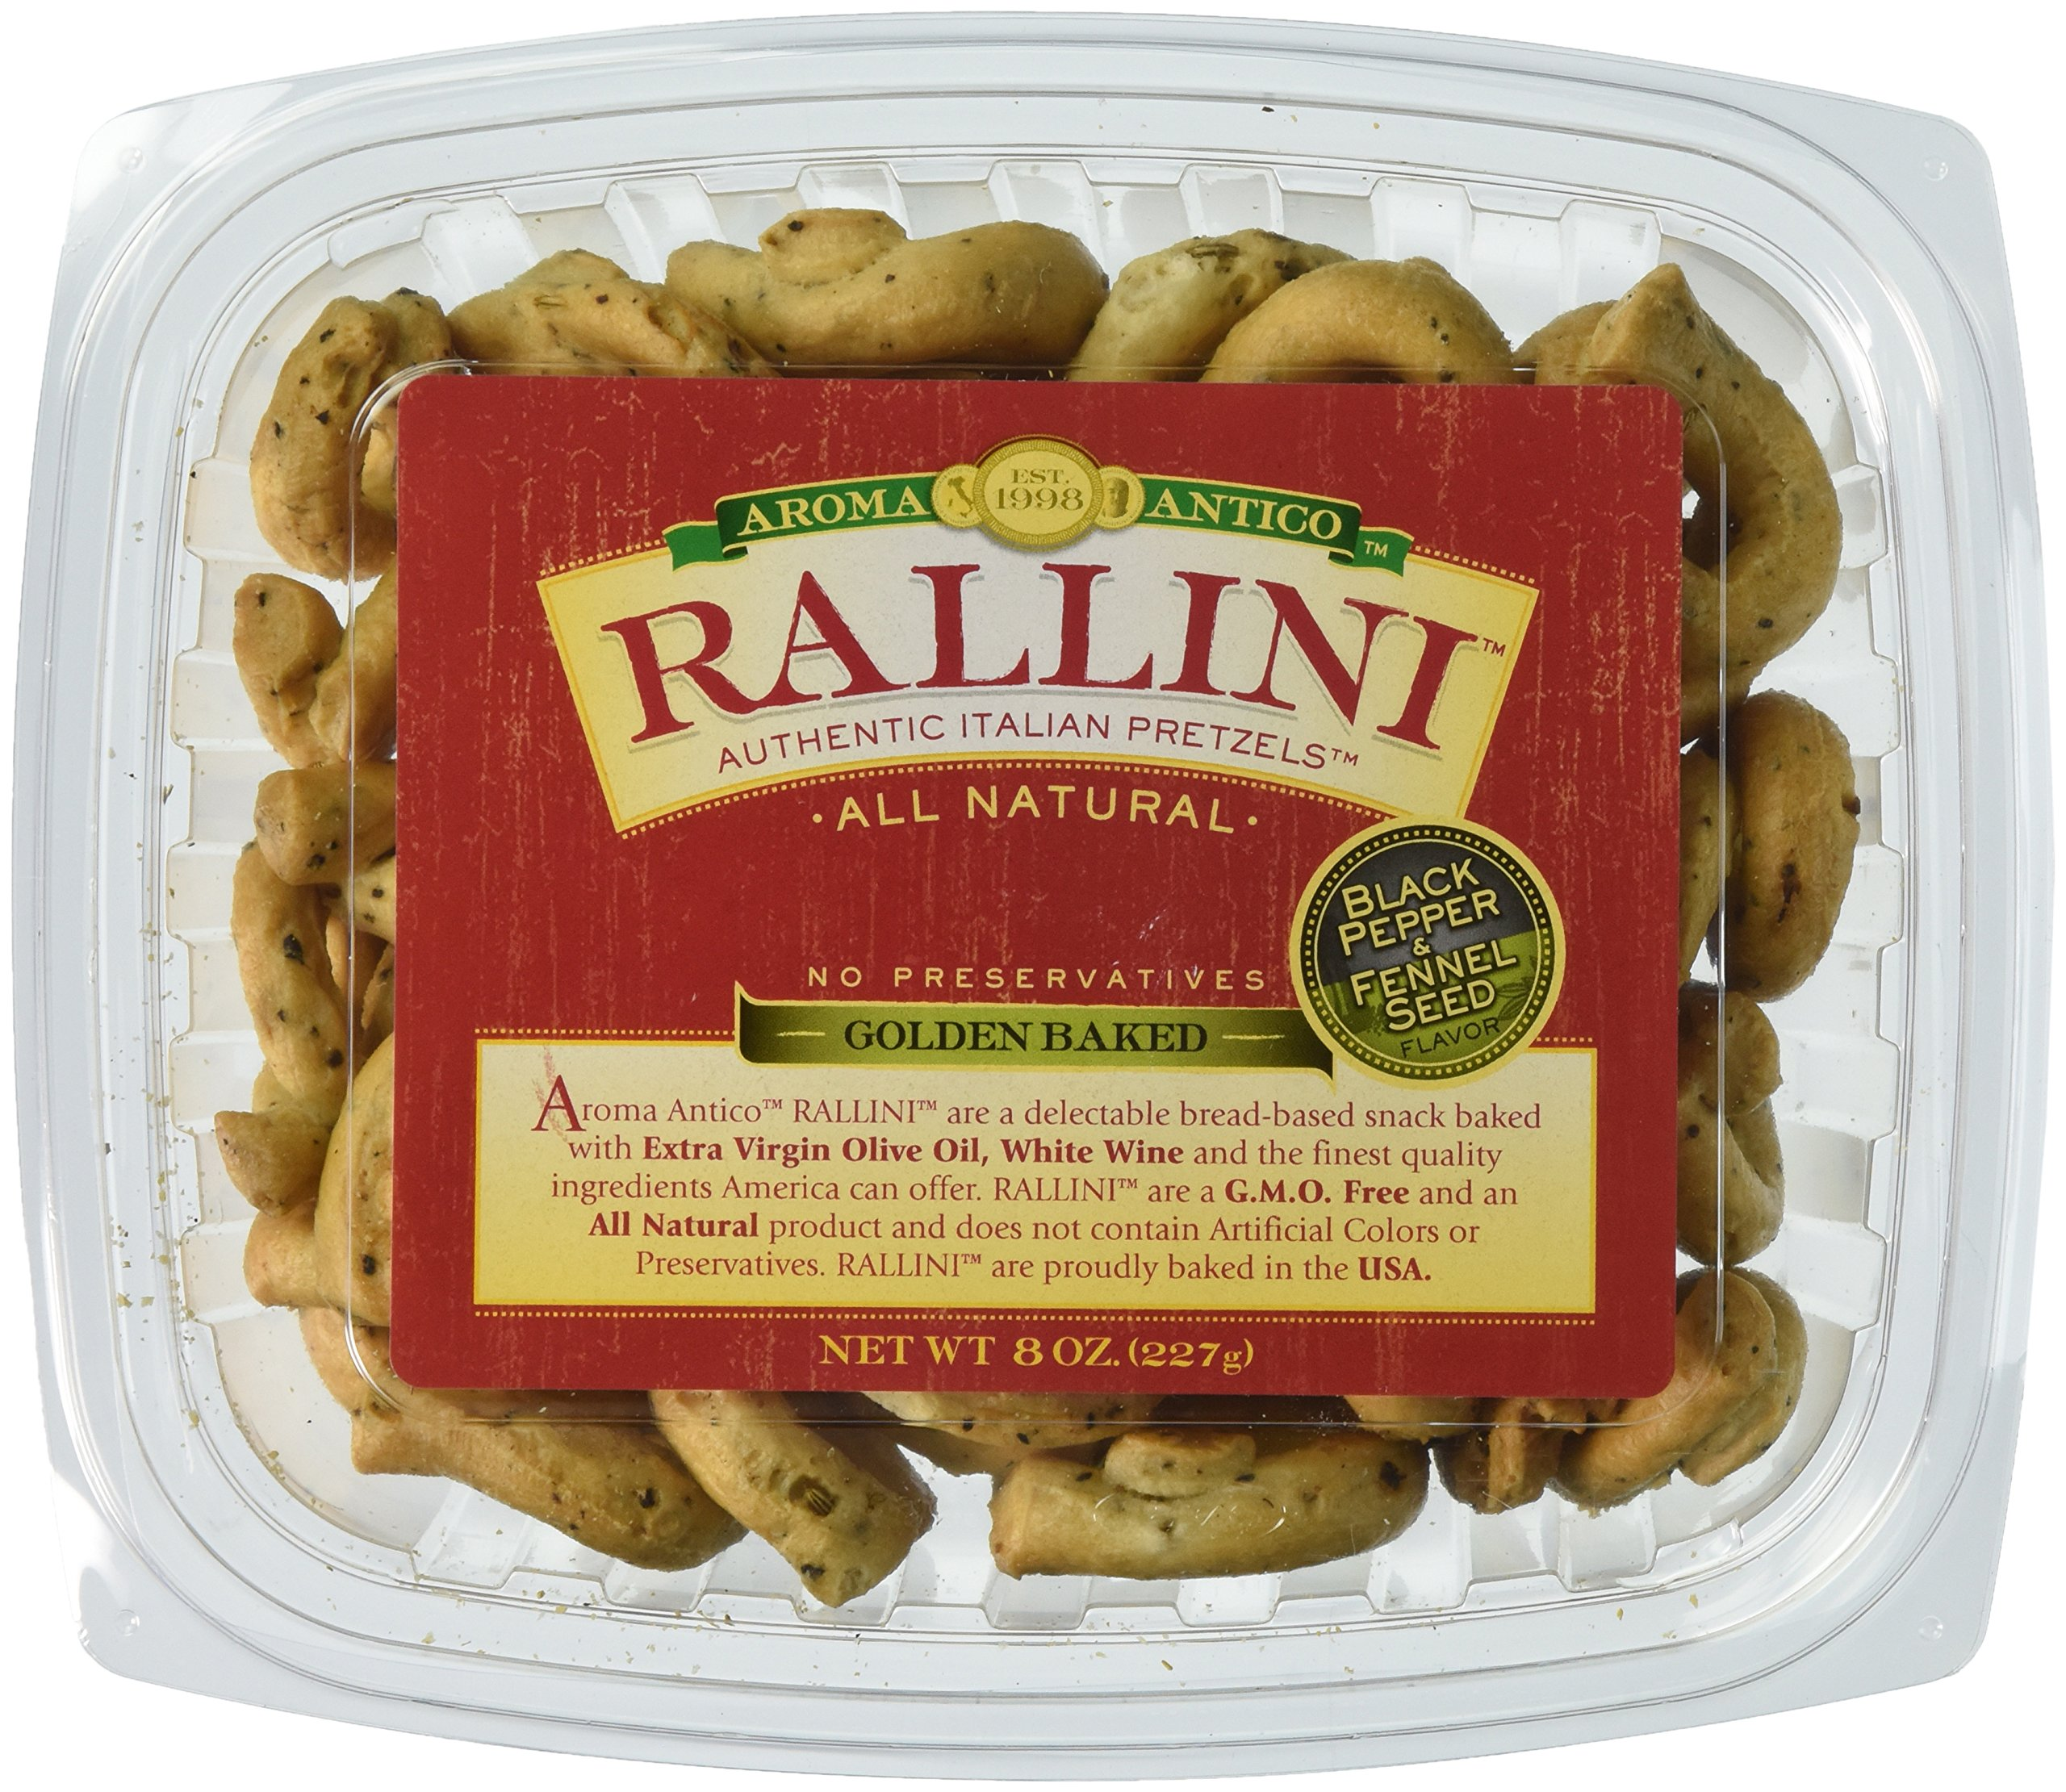 RALLINI Authentic Italian Pretzels, Black Pepper and Fennel Seed, 8 Ounce (Pack of 6)